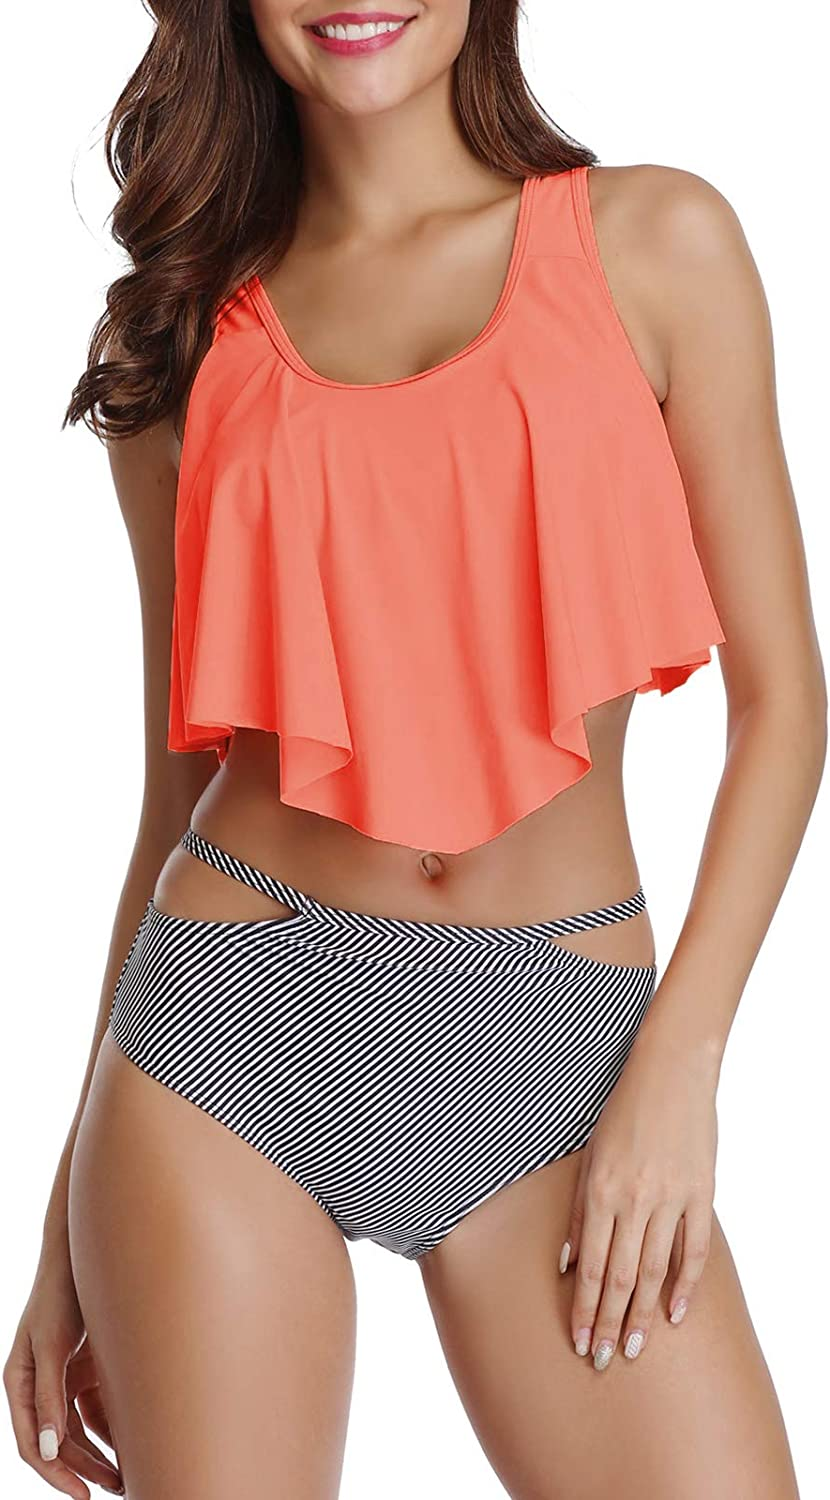 American Trends Womens Tankini Swimsuits Two Piece Bikinis Ruffled Tank Top with Cut Out Bottom Flounce Bathing Suits